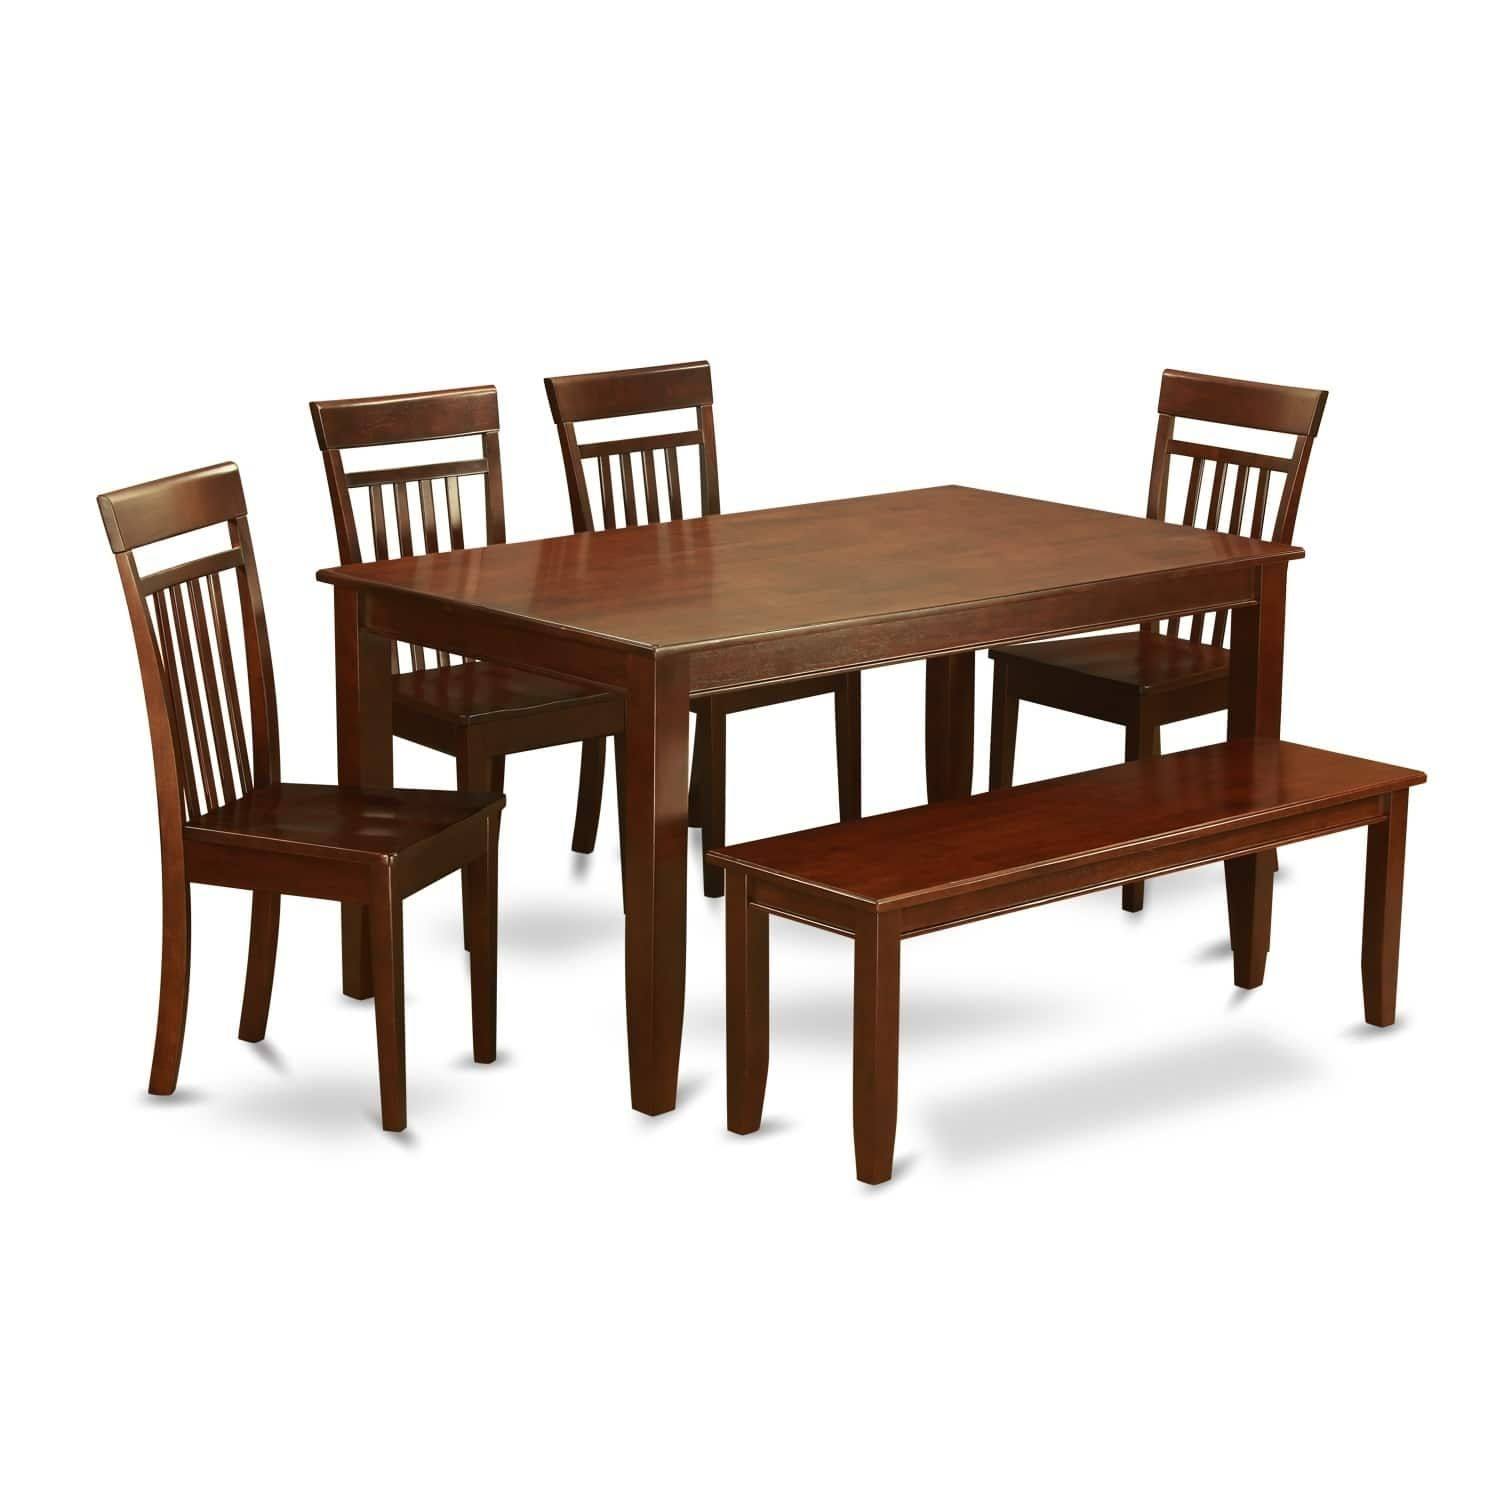 DUCA6D-MAH 6 PC Kitchen Table set - Table and 4 chair and Bench ...